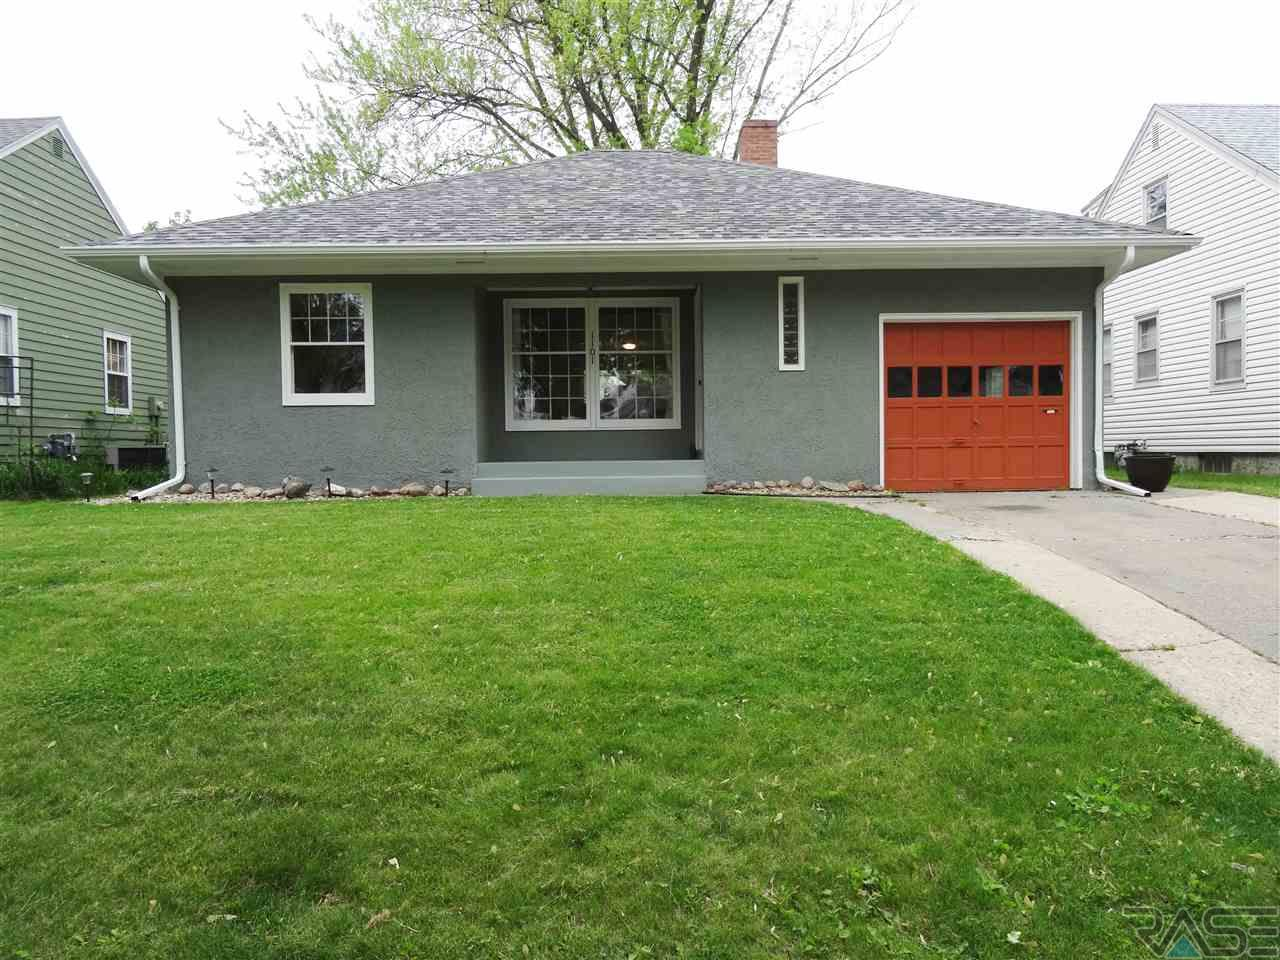 1101 S Glendale Ave, SIOUX FALLS